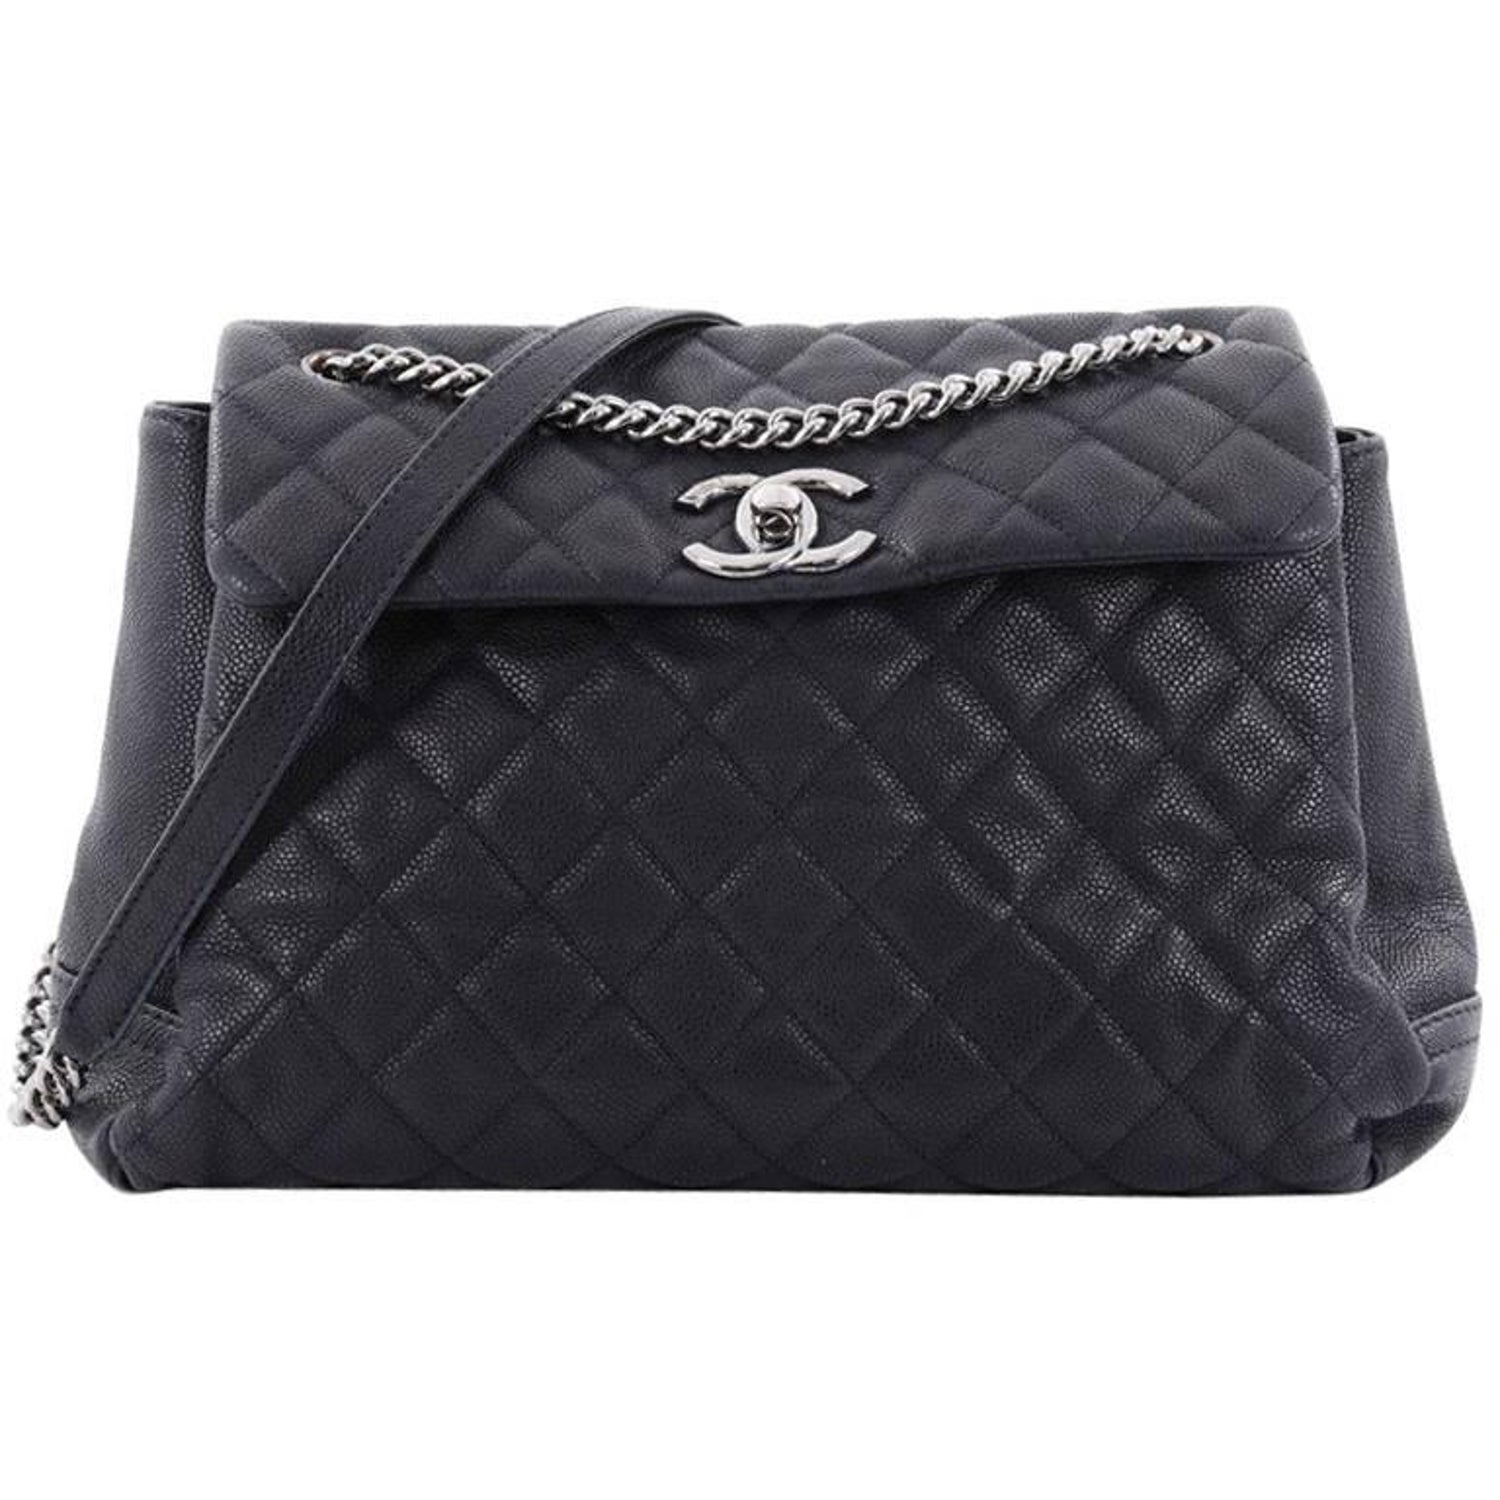 ee6abd76d4e7 Chanel Lady Pearly Flap Bag Quilted Matte Caviar Large at 1stdibs